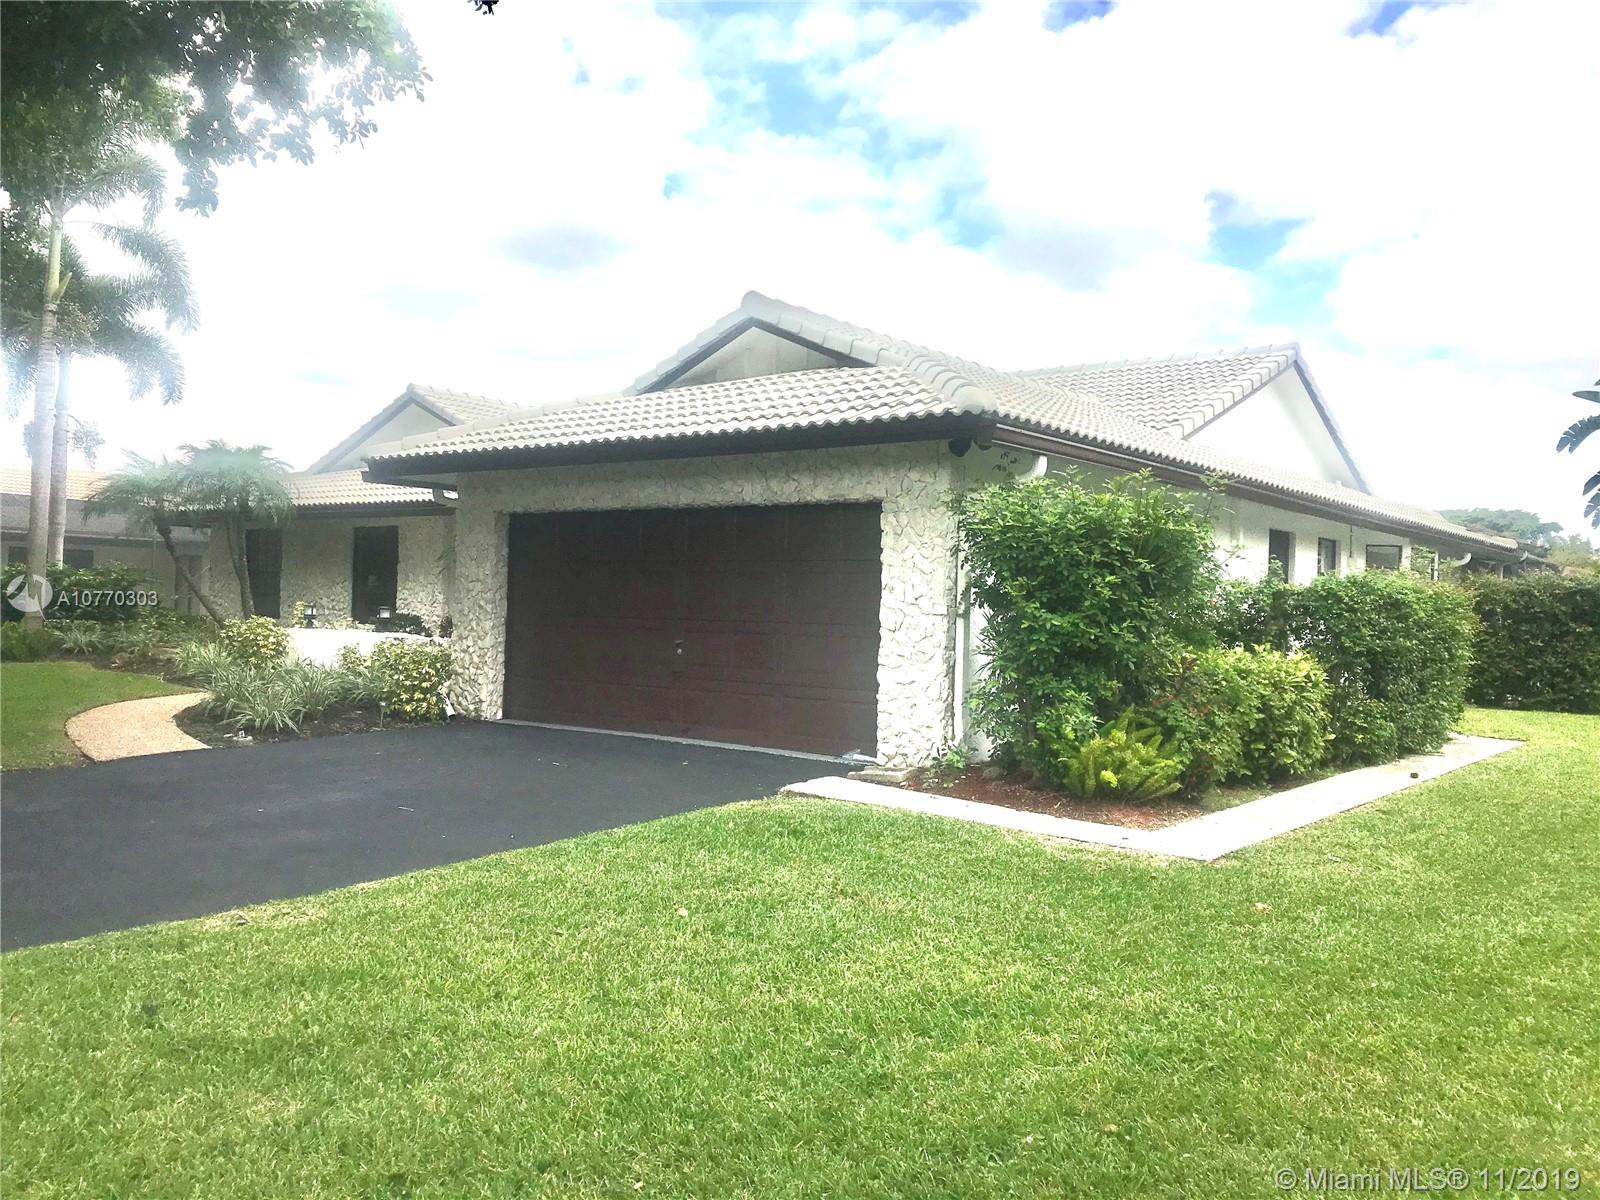 11303 NW 5th St, Coral Springs, FL 33071